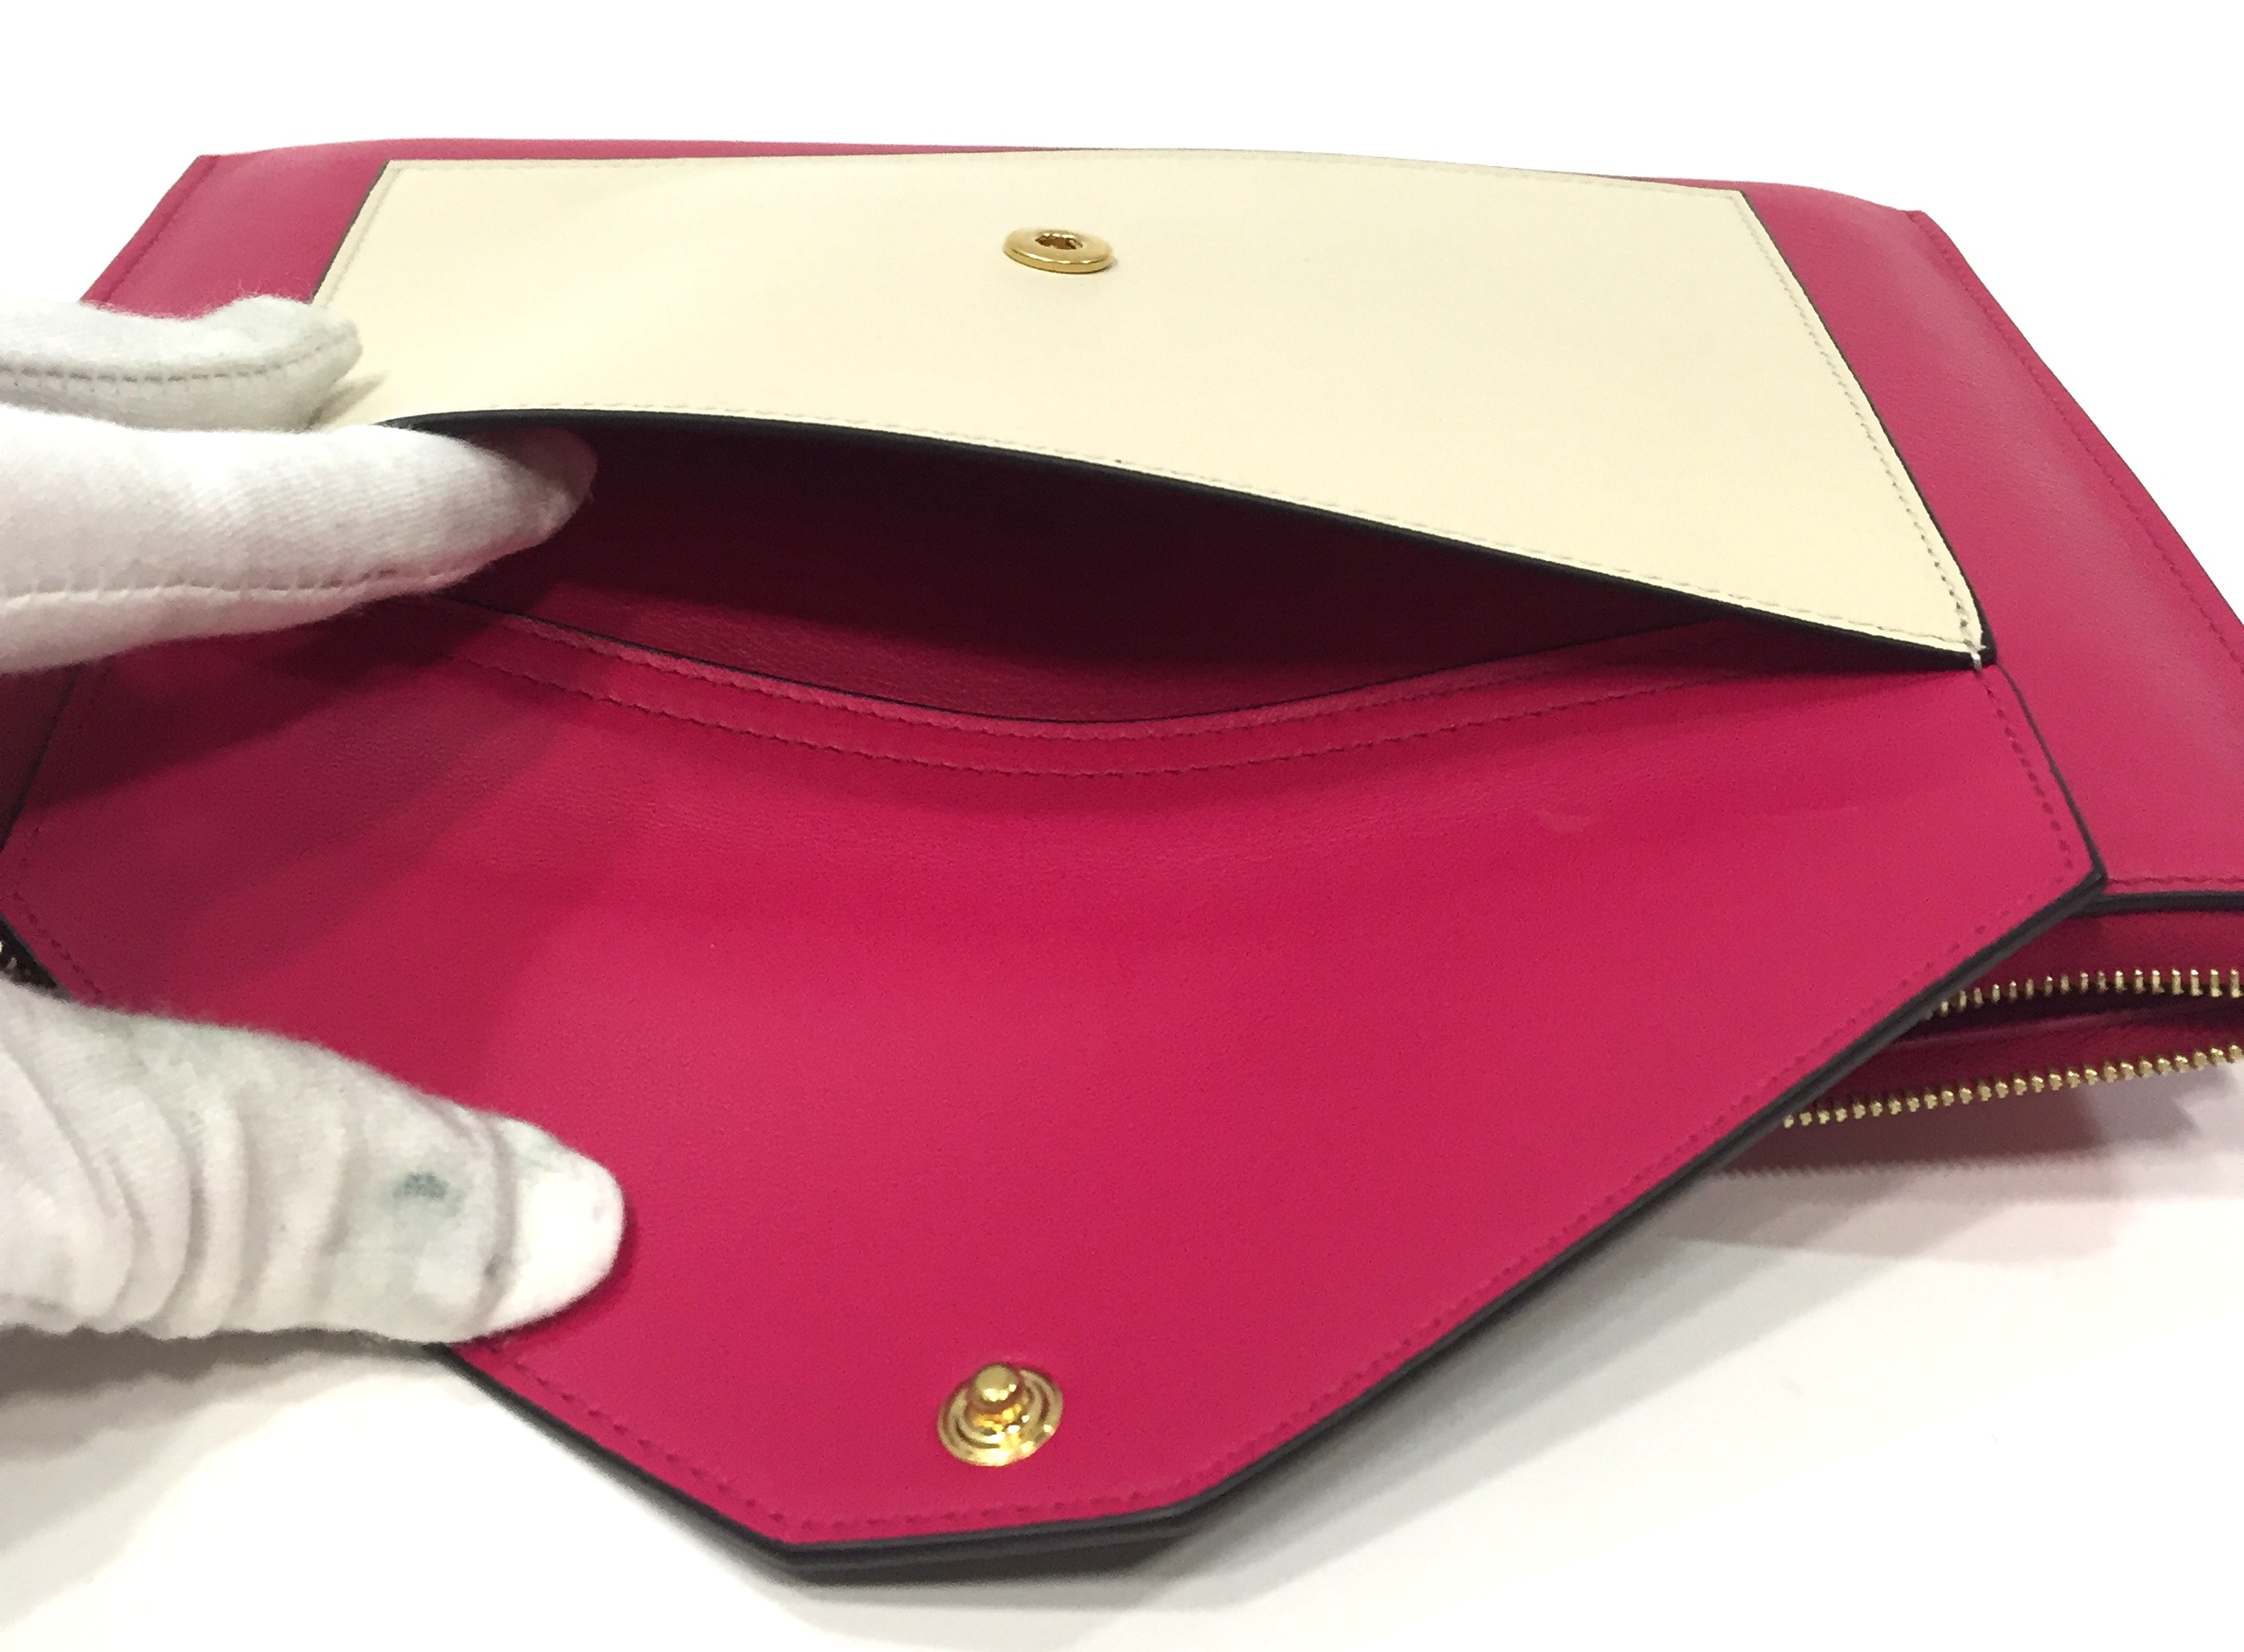 celine bags online shopping - Celine Fuschia and Cream Leather Pocket Clutch Handbag | Alexis ...